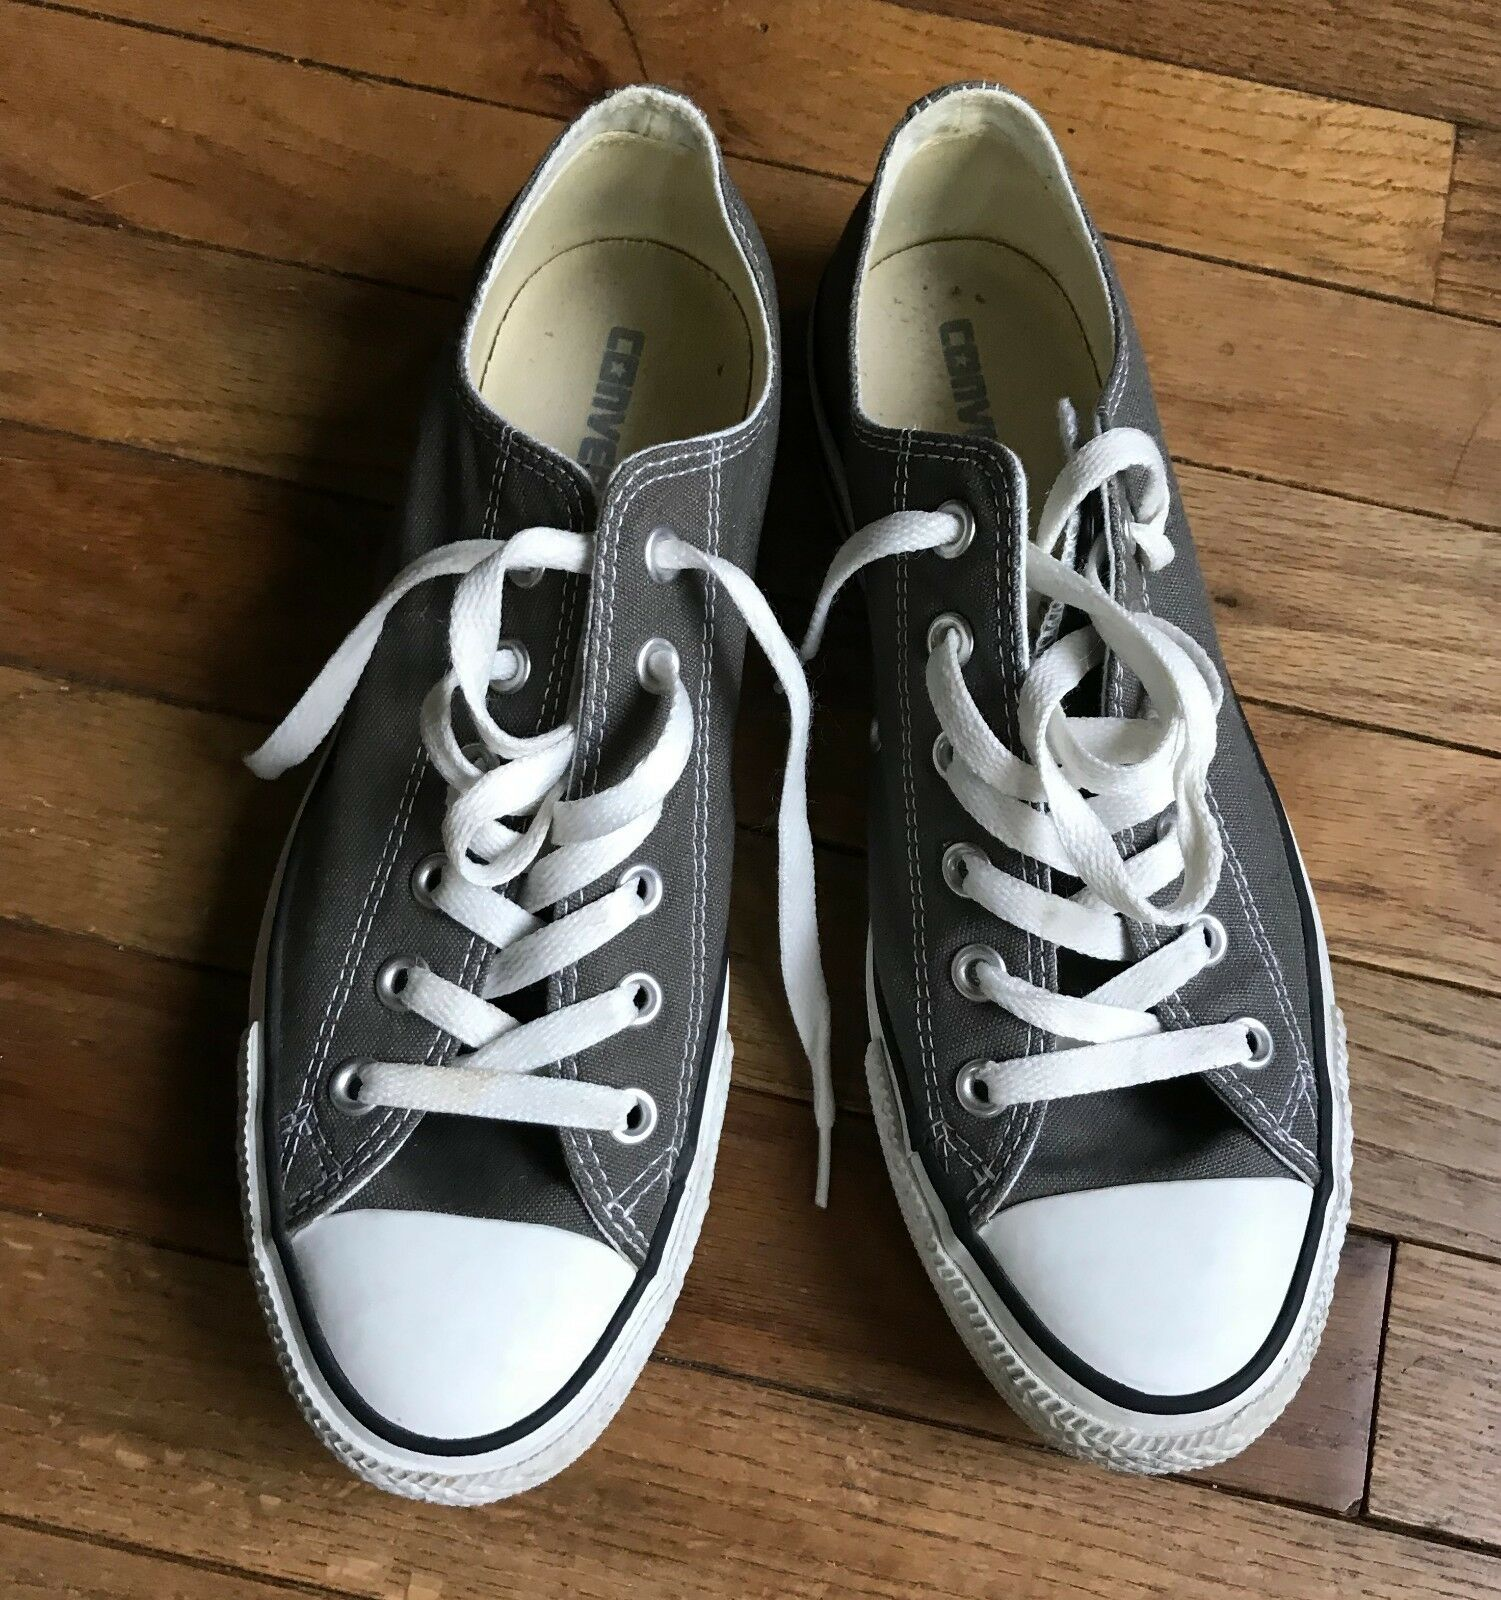 Converse All Star Low Chuck Taylor Canvas Shoes Low Star Top Size 8 Men's 10 Women's e2a533